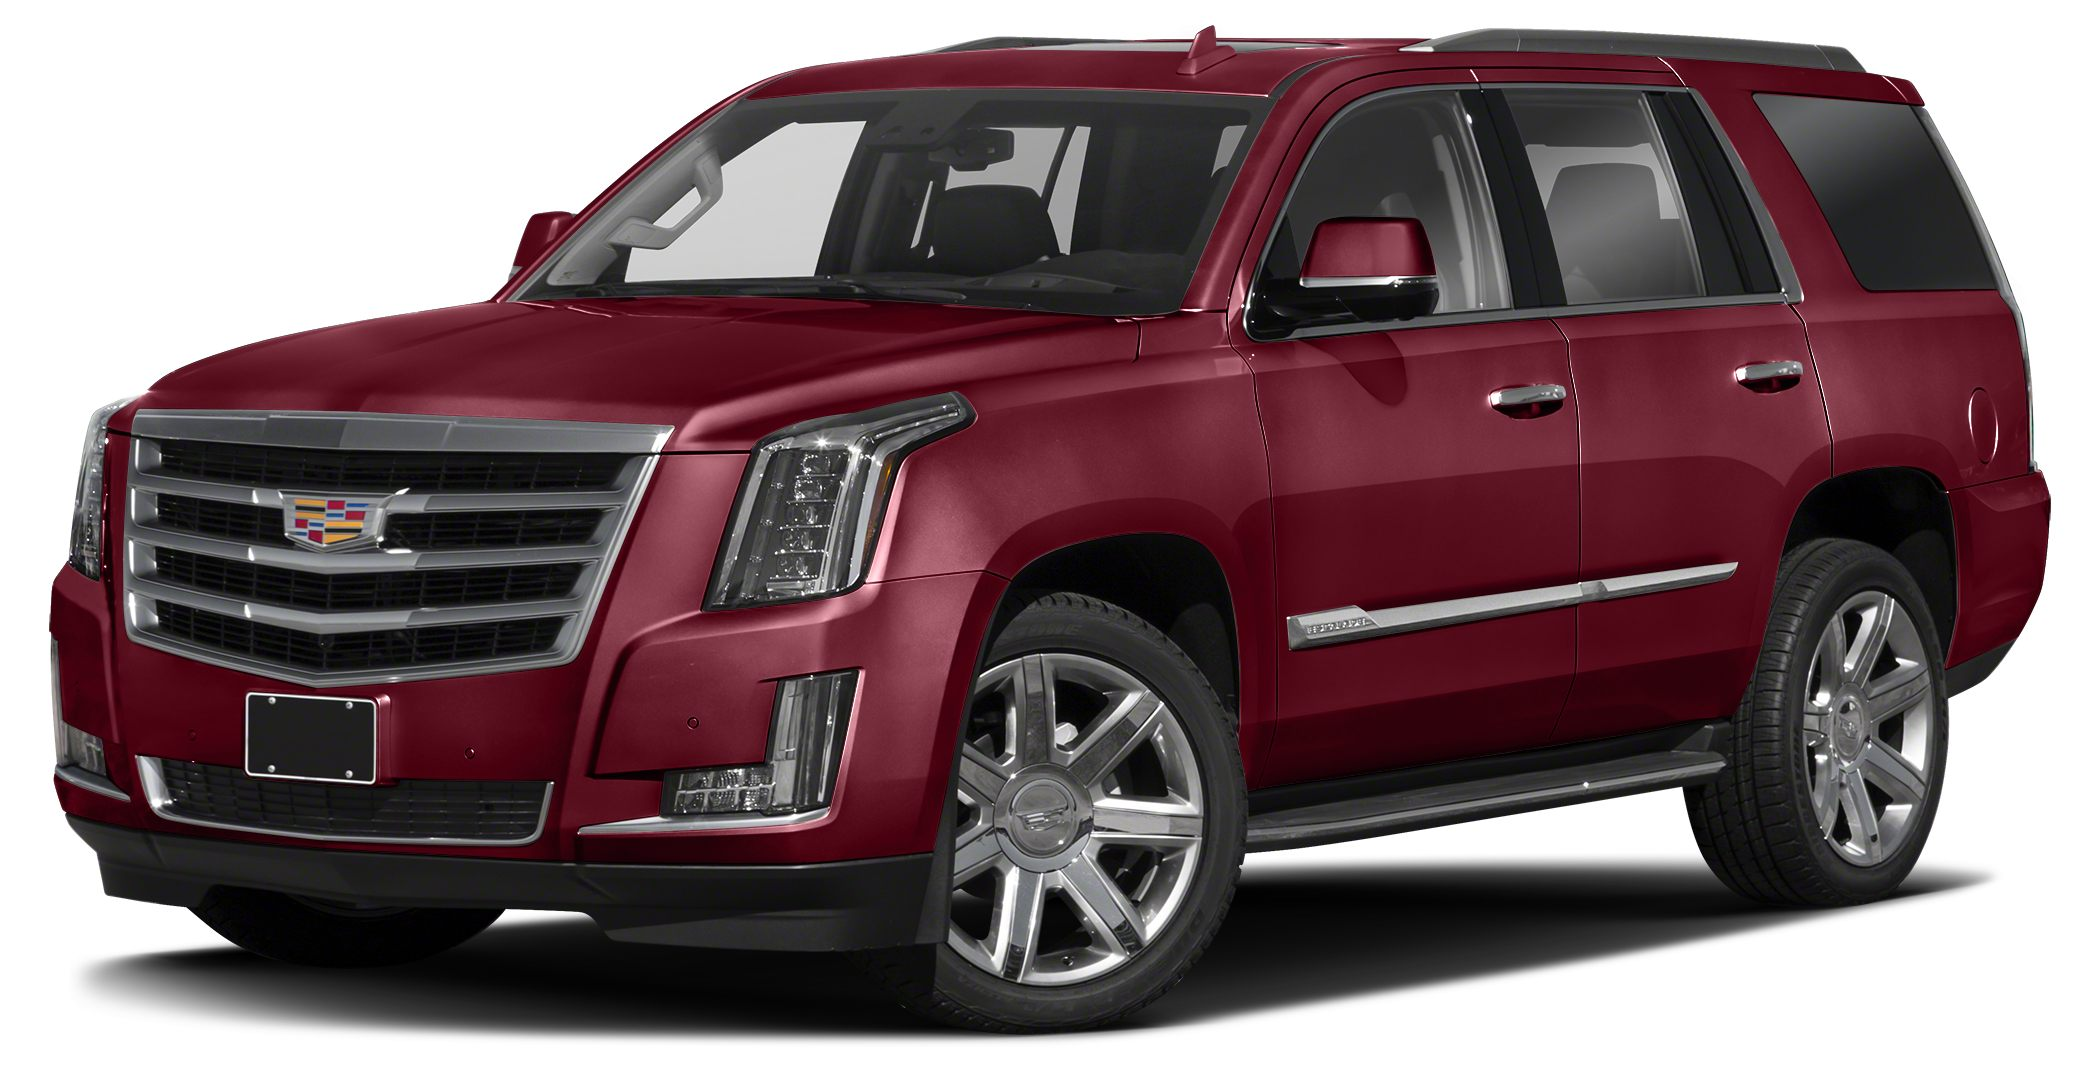 2016 Cadillac Escalade Luxury Collection Miles 17998Color Red Stock GR313361 VIN 1GYS3BKJ4GR